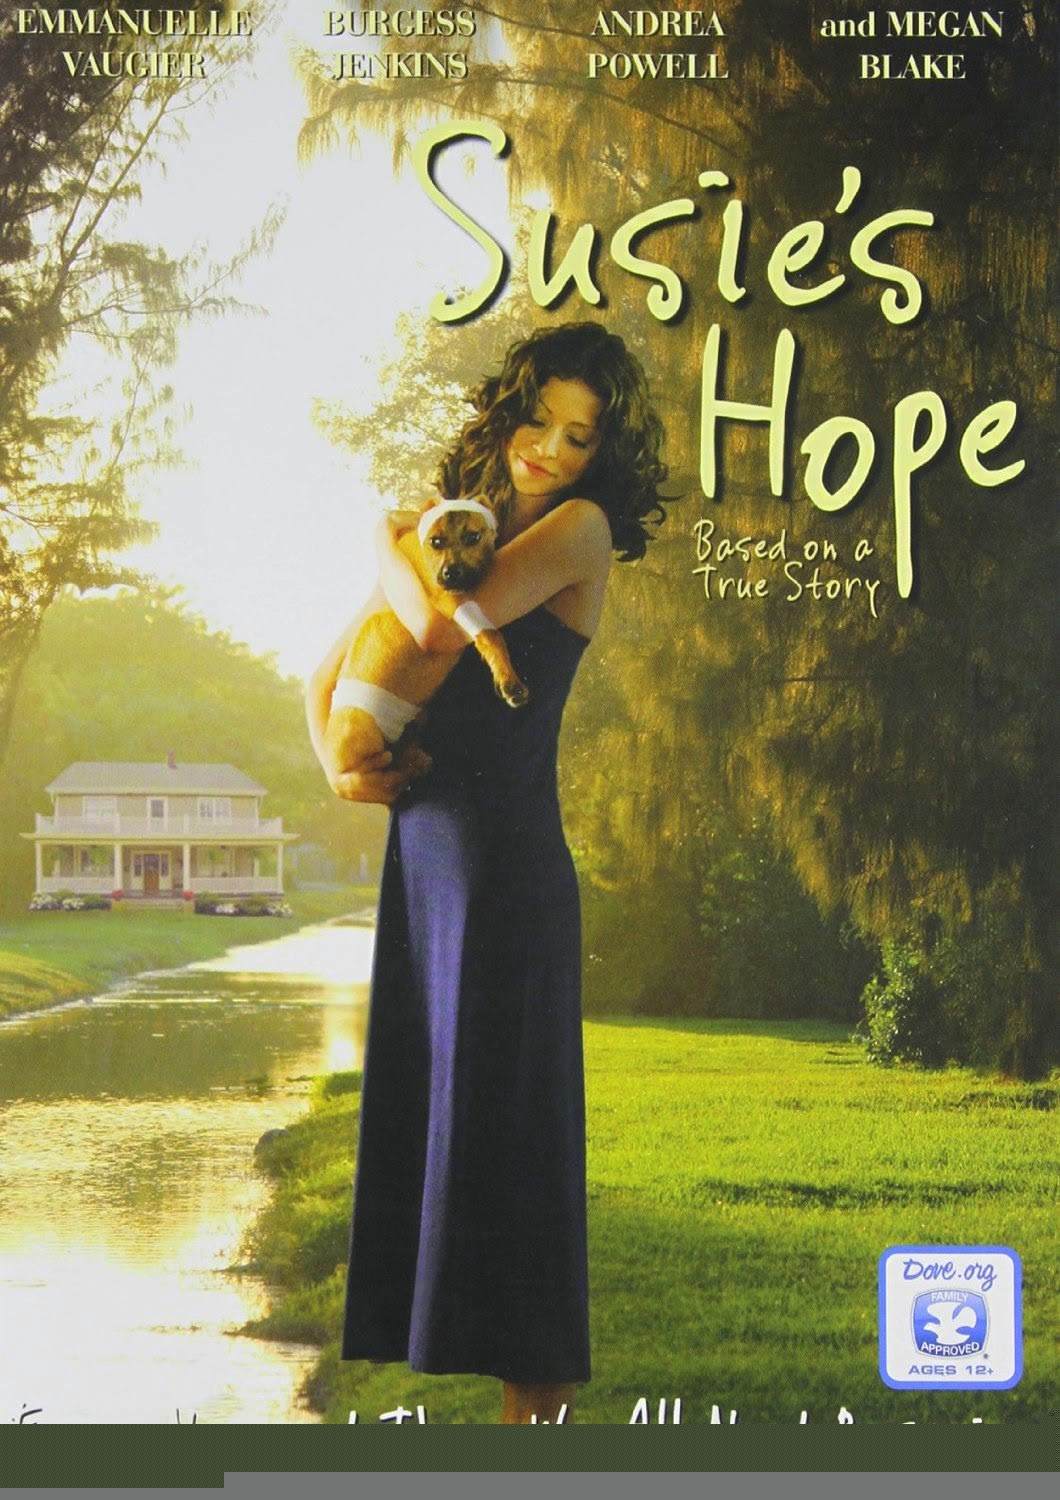 DVD Giveaway Susie's Hope